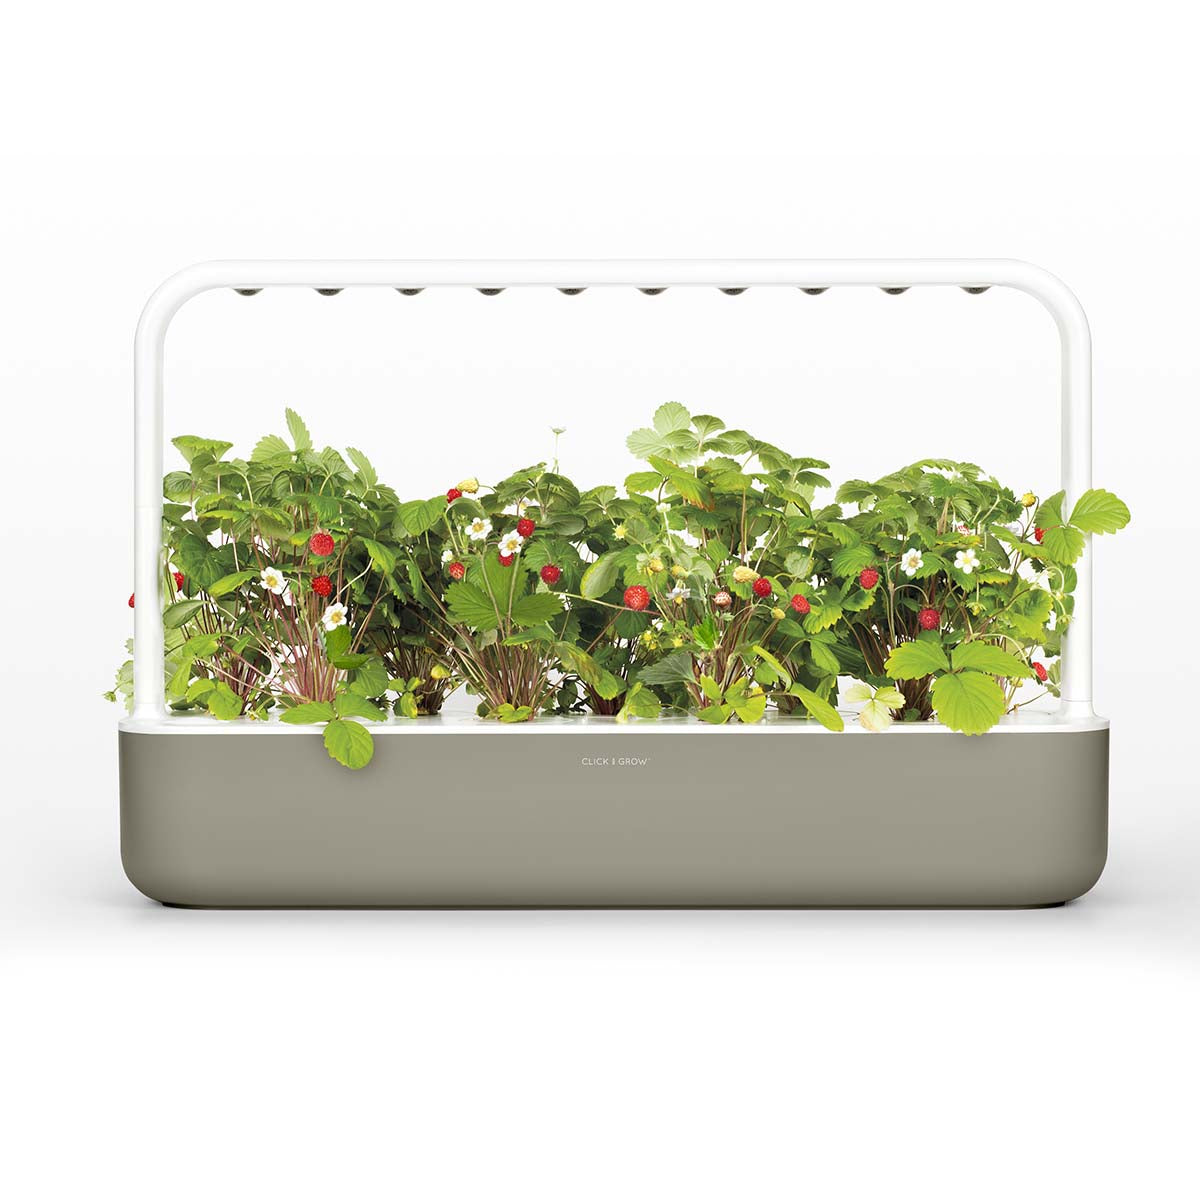 Smart Garden 9 Subscription Bundle